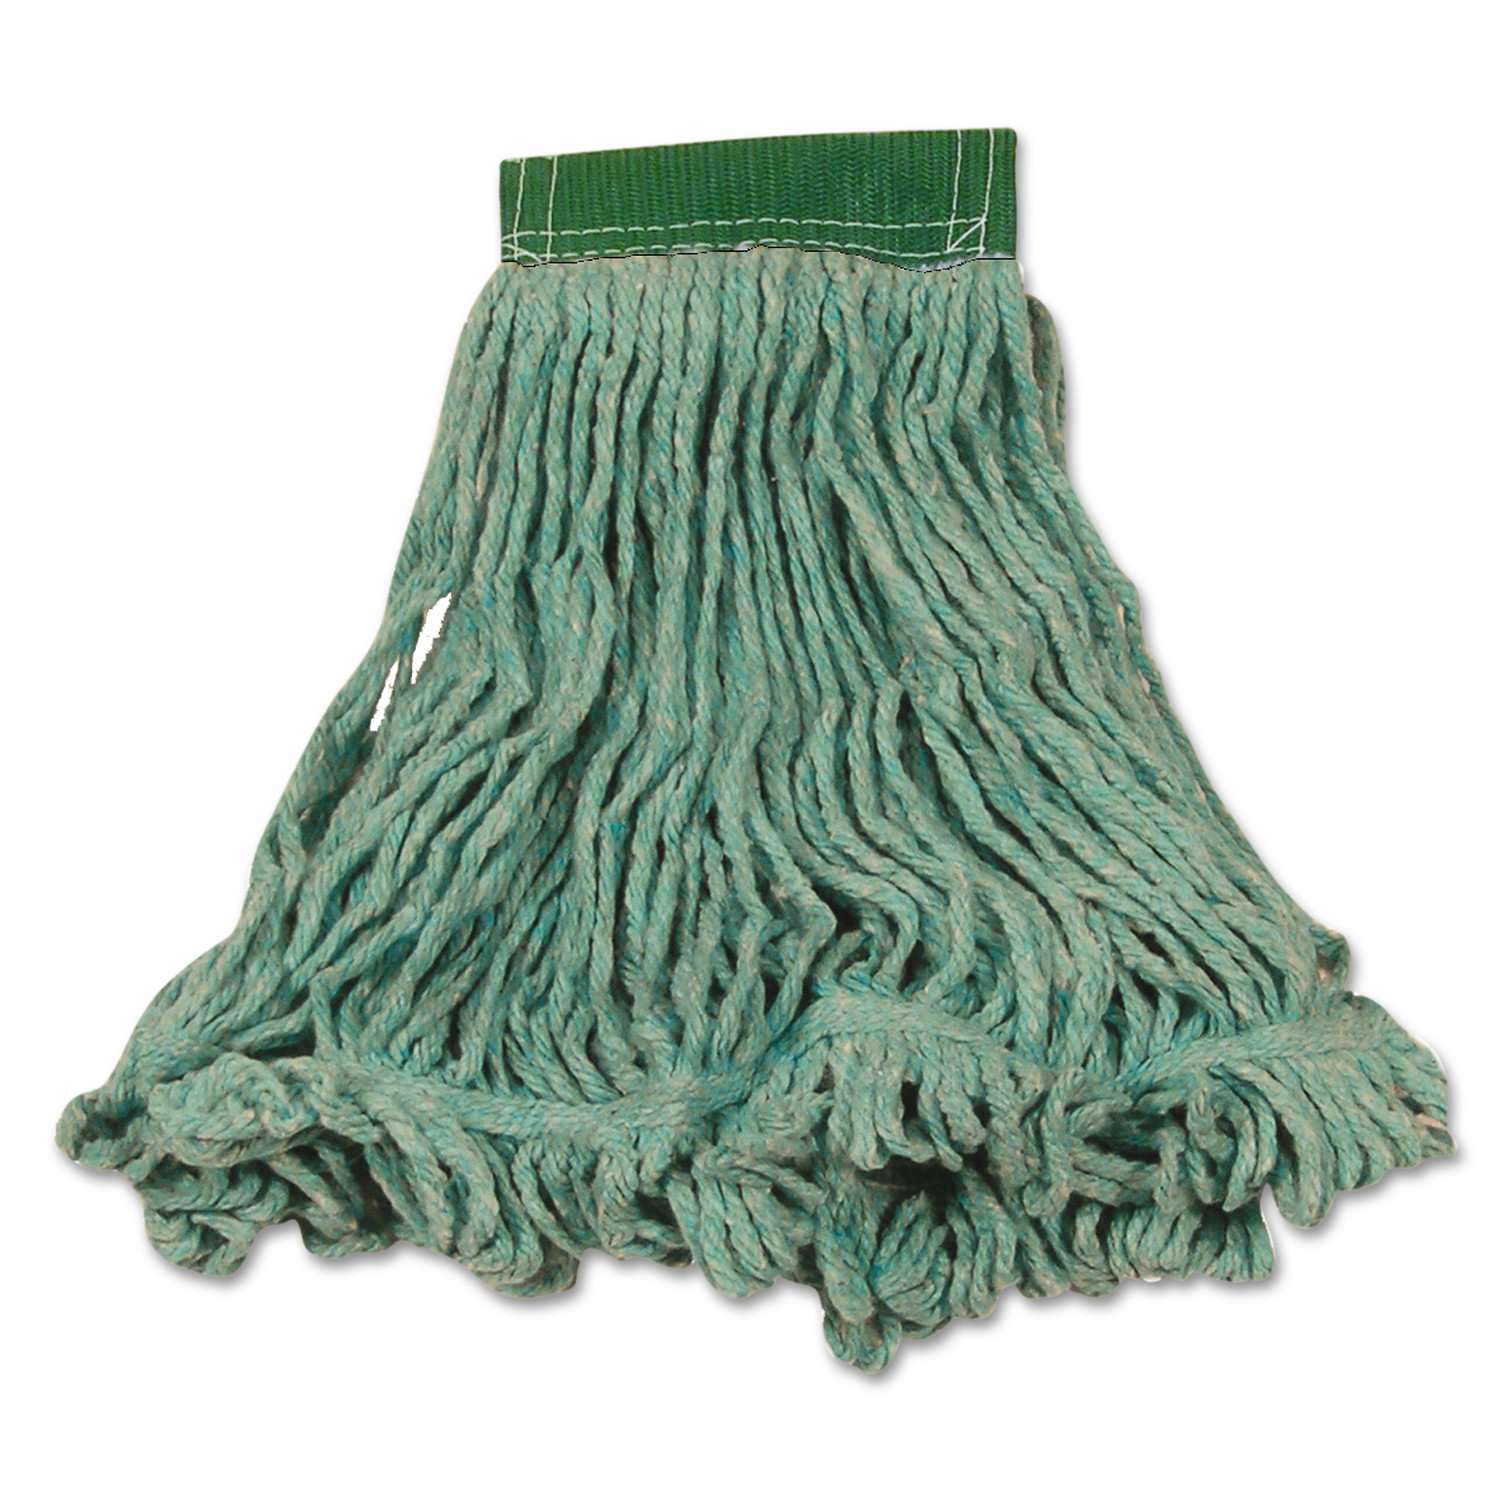 Rubbermaid Commercial Super Stitch Blend Mop Heads, Cotton/Synthetic, Green, Medium